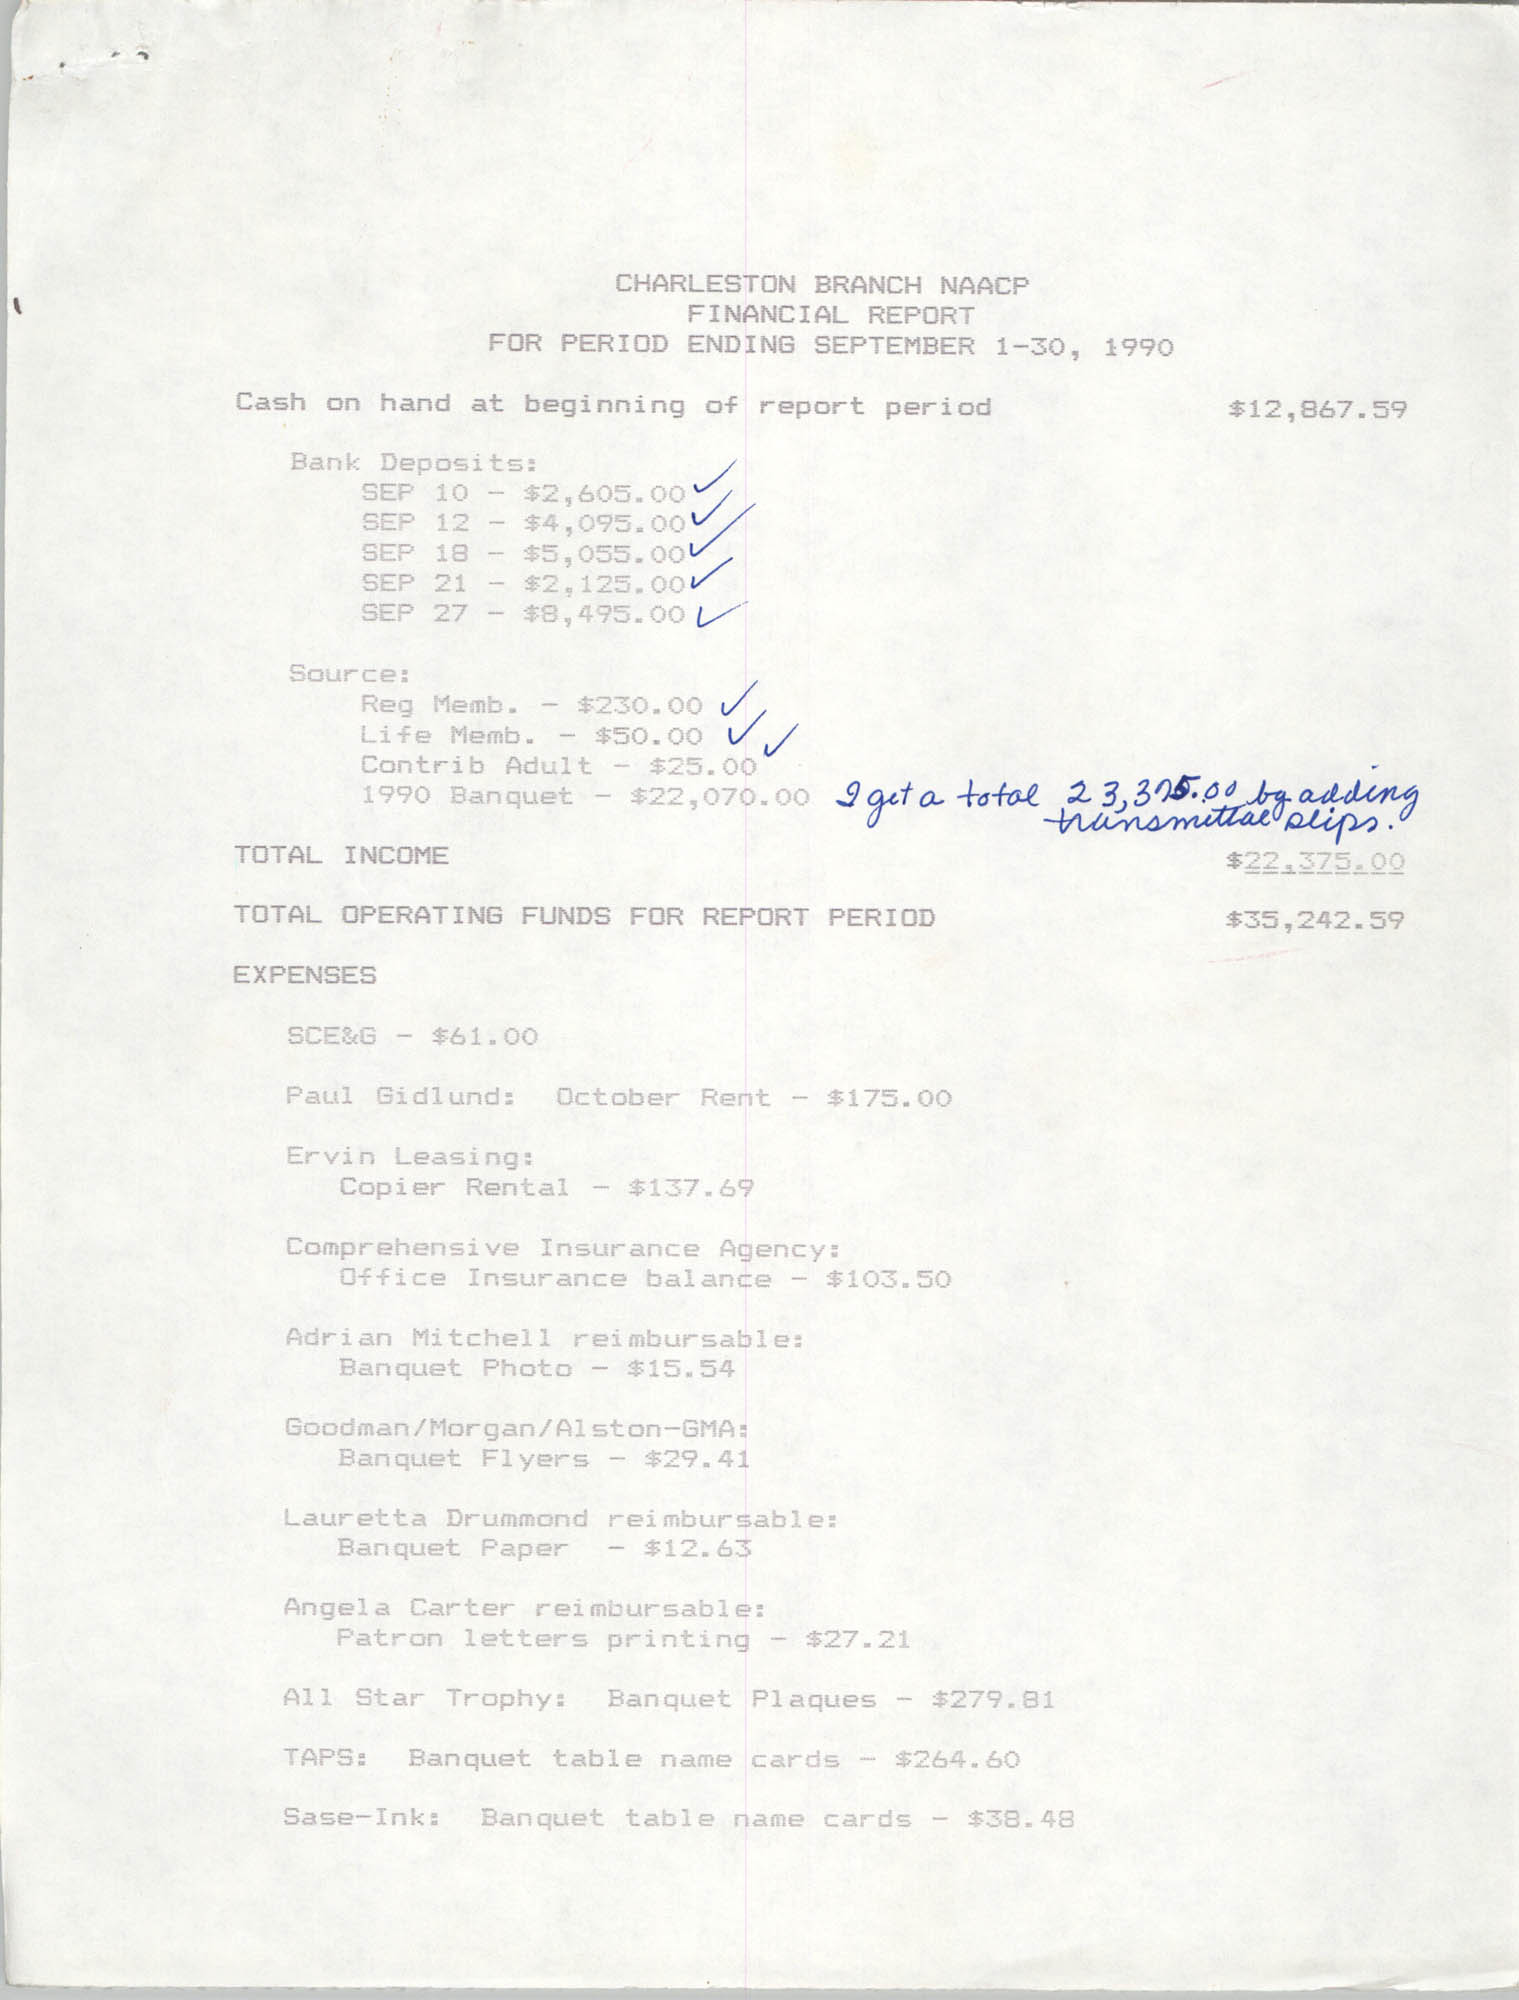 Charleston Branch of the NAACP Financial Report, September 1990, Page 1